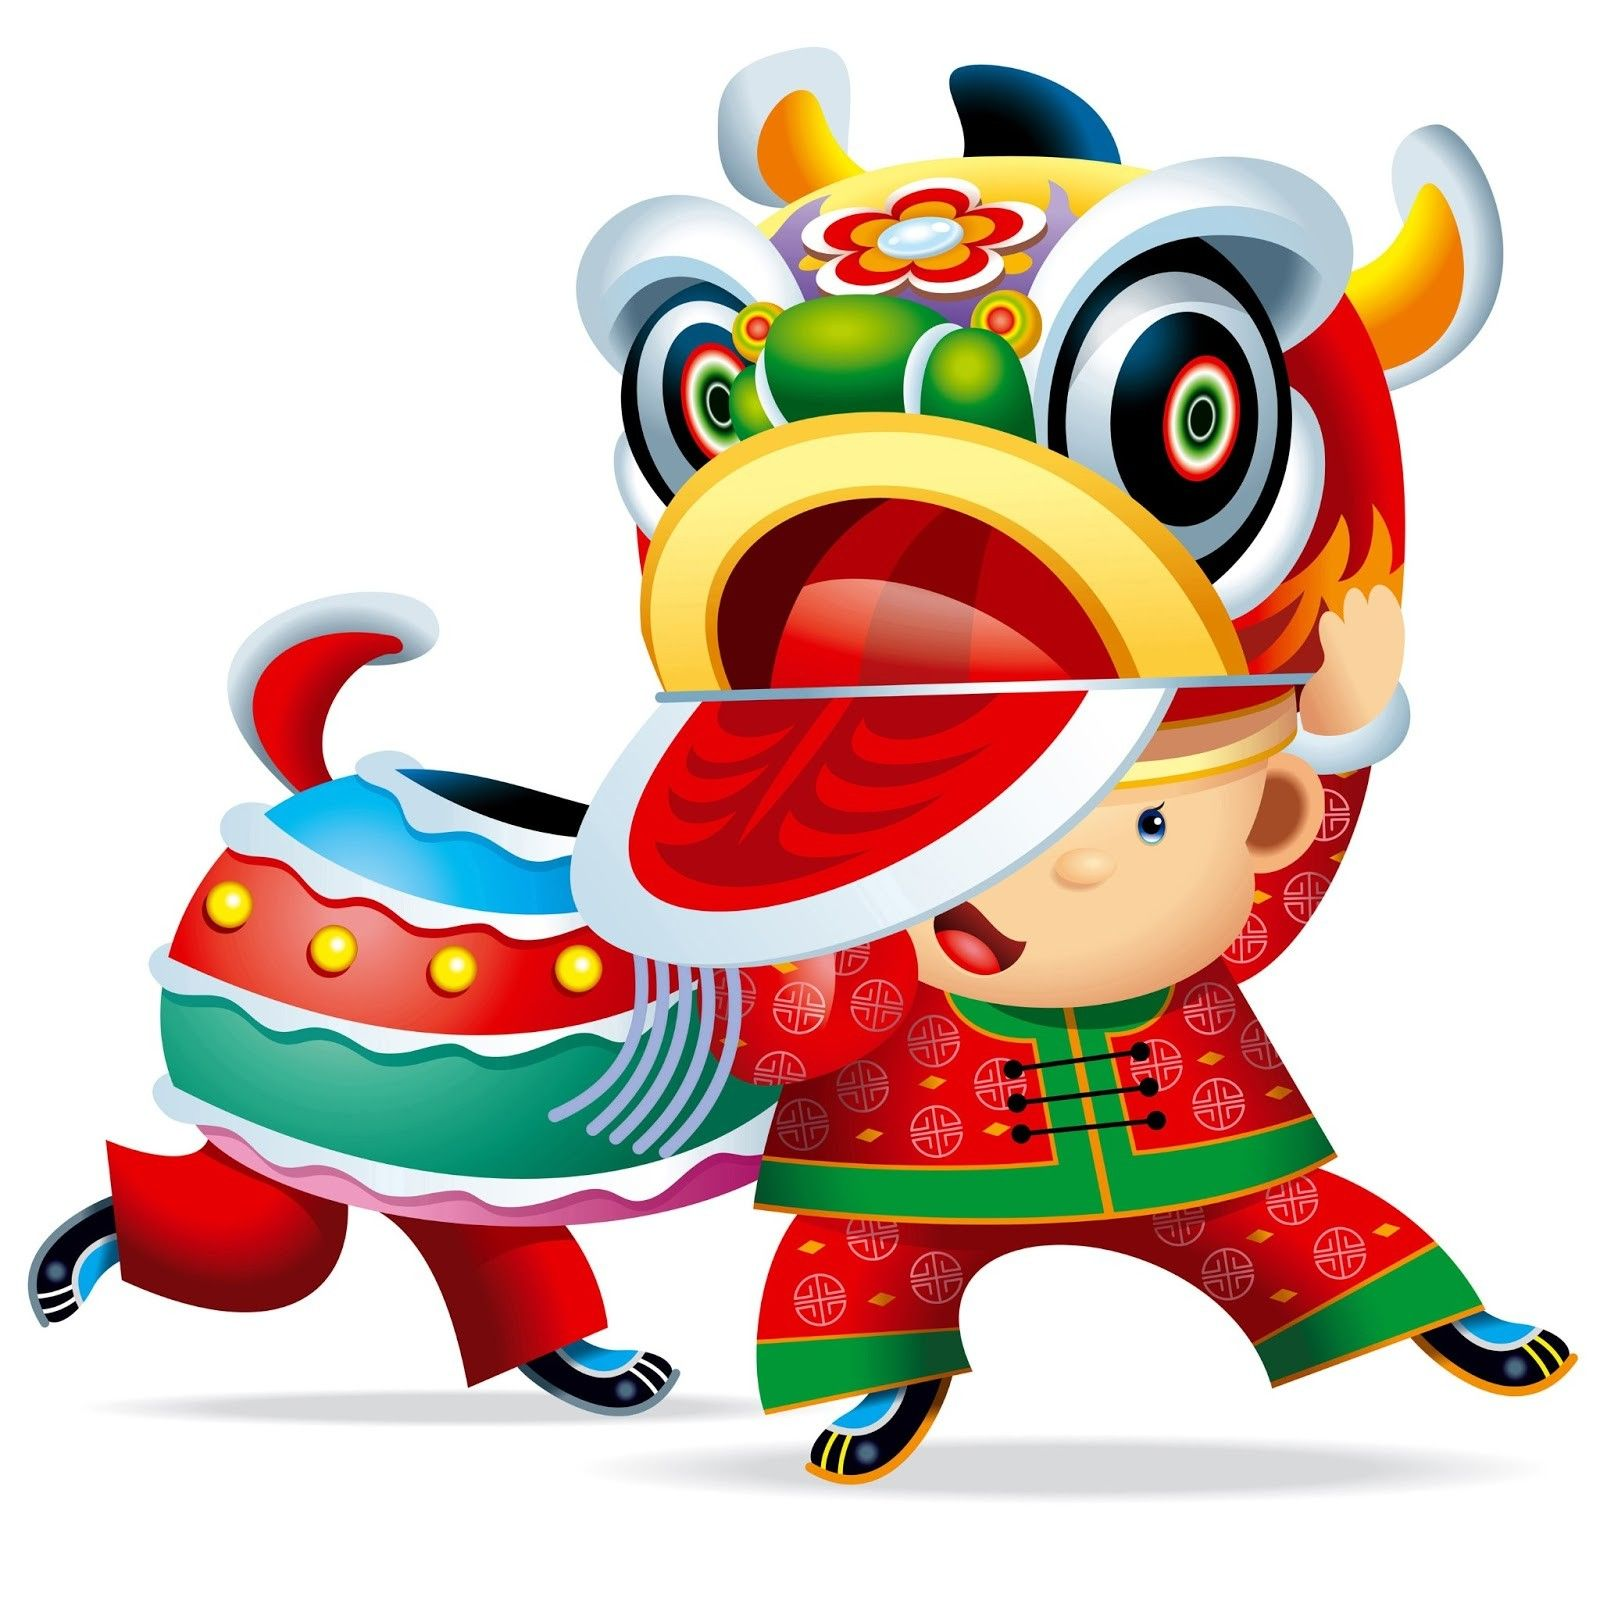 Lunar New Year or Chinese New Year will be celebrated this